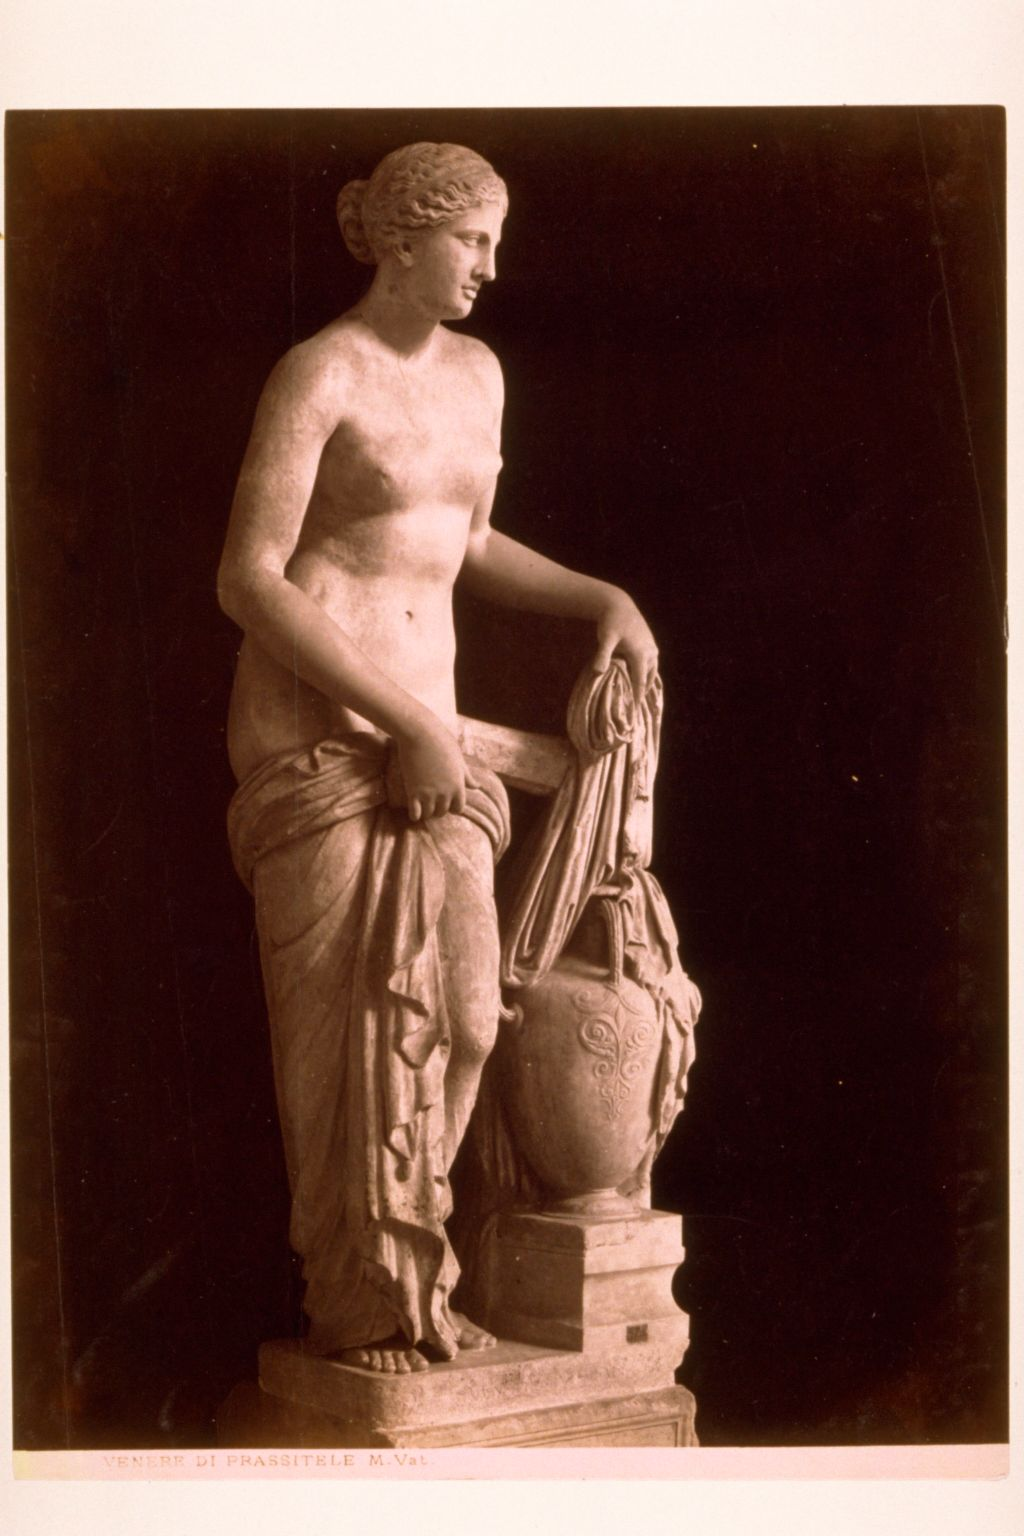 Venere di Prassitele. (Copy of Aphrodite of Knidos)